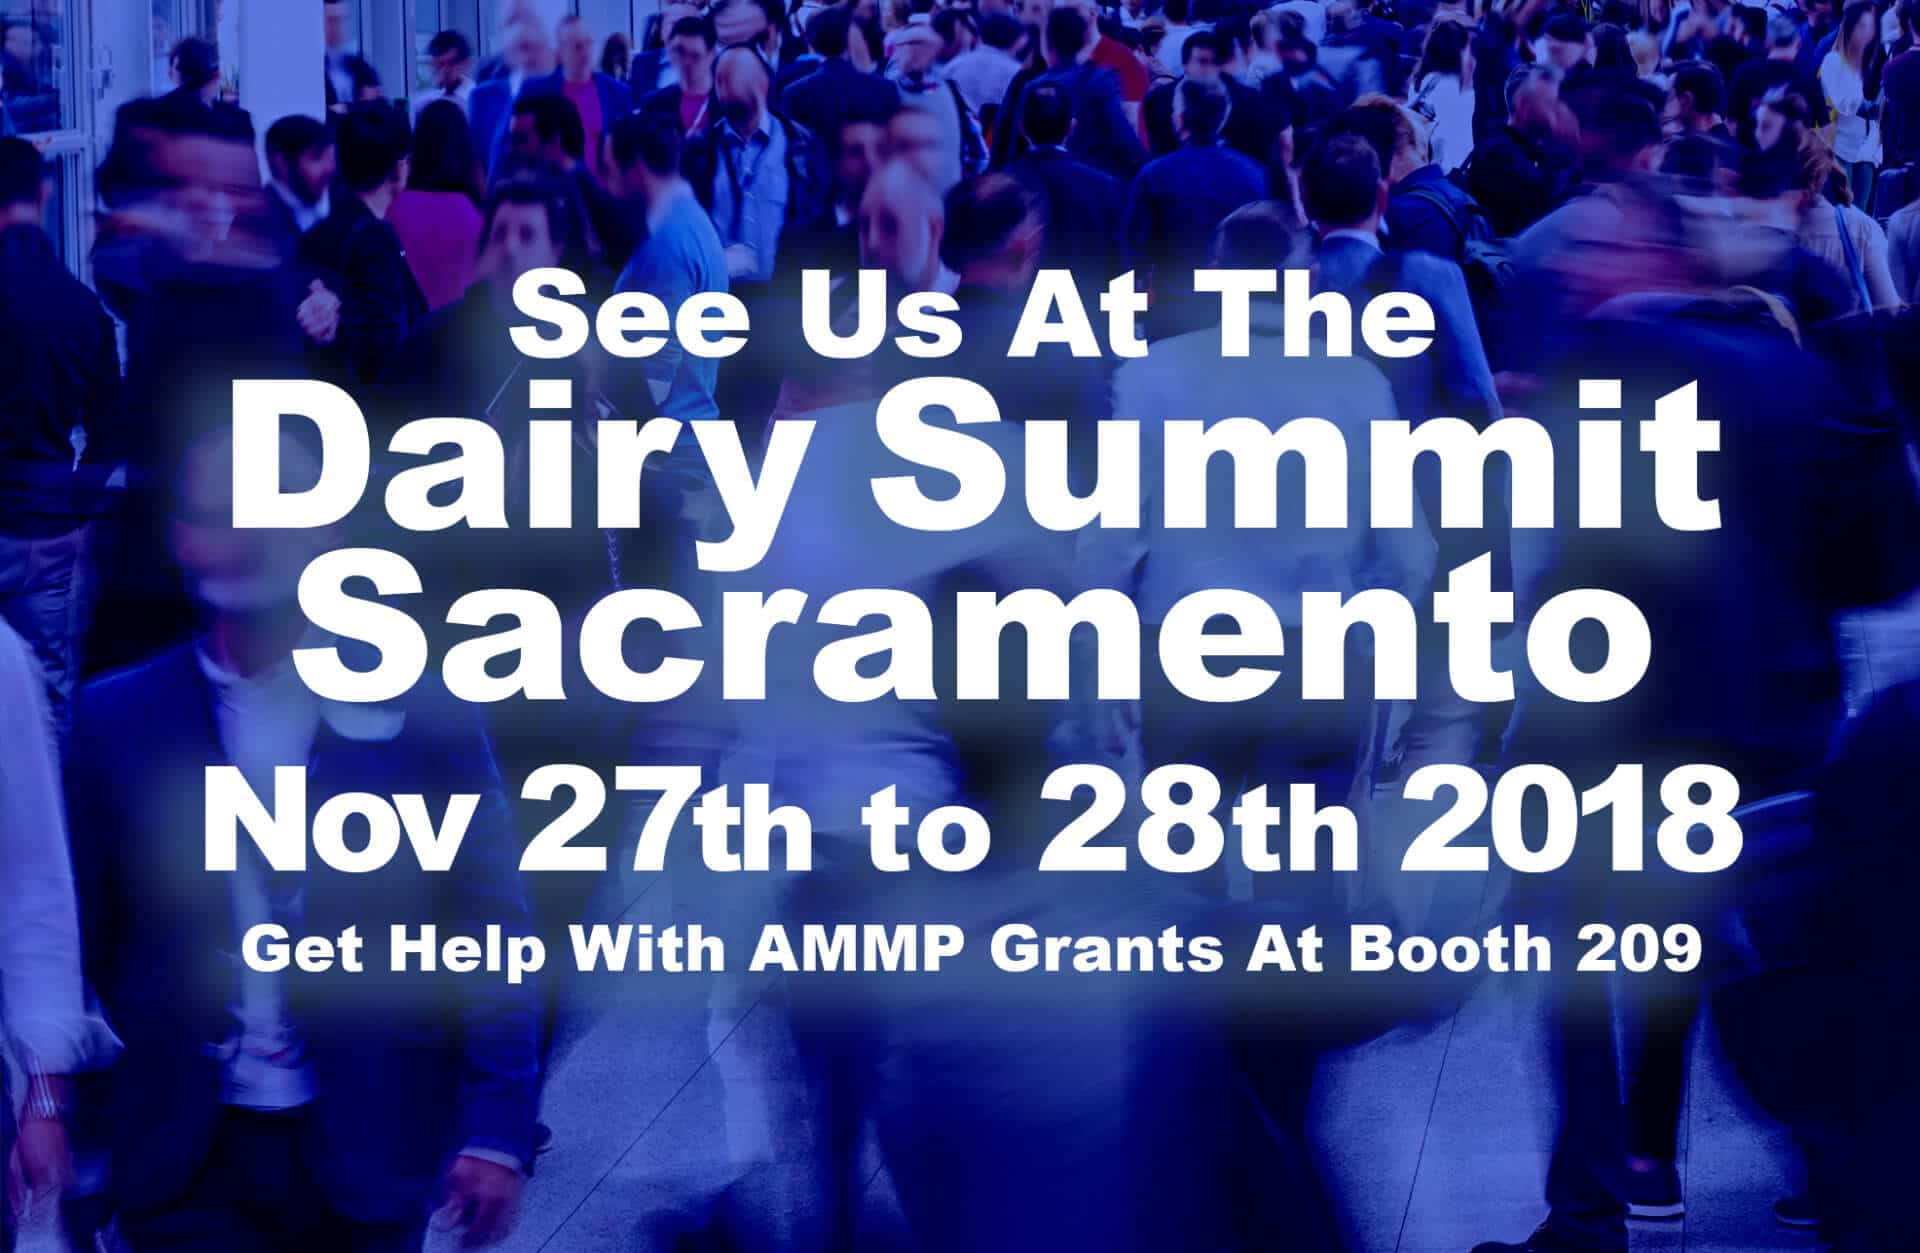 Dairy Summit in Sacramento